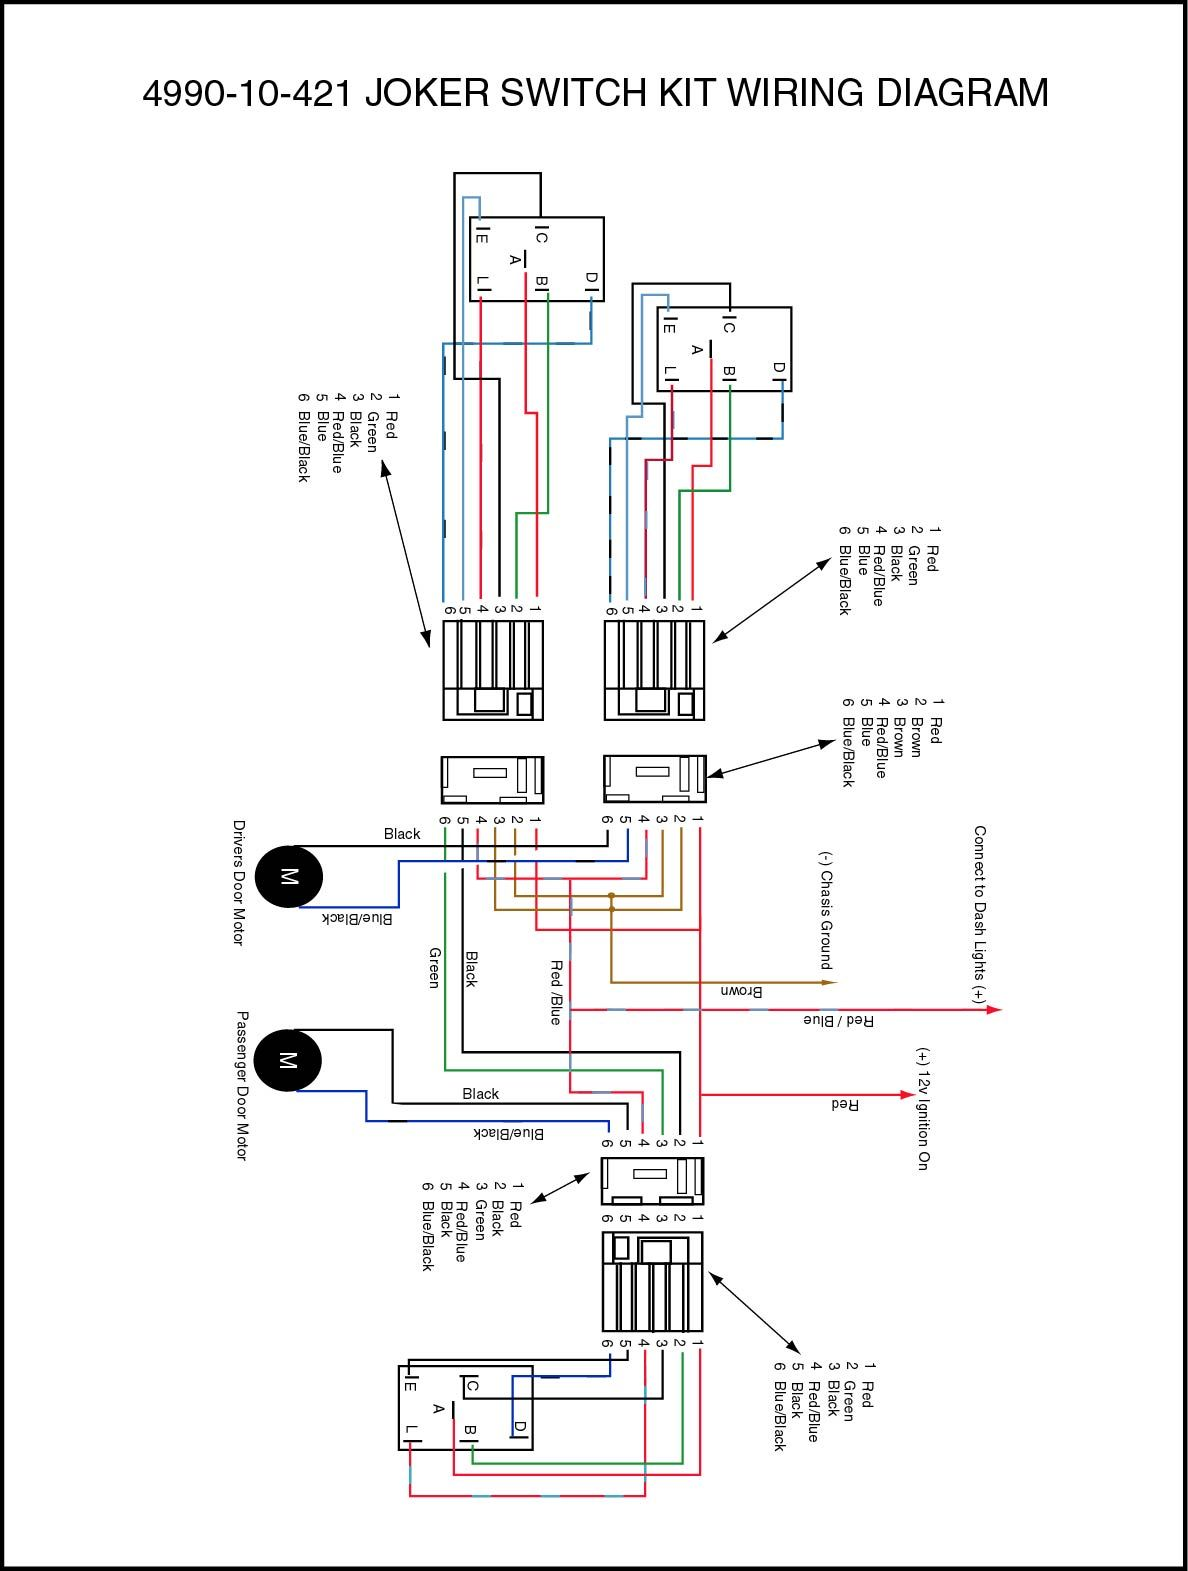 Electric Life Wiring Power Window Diagram Diagram Wire Power